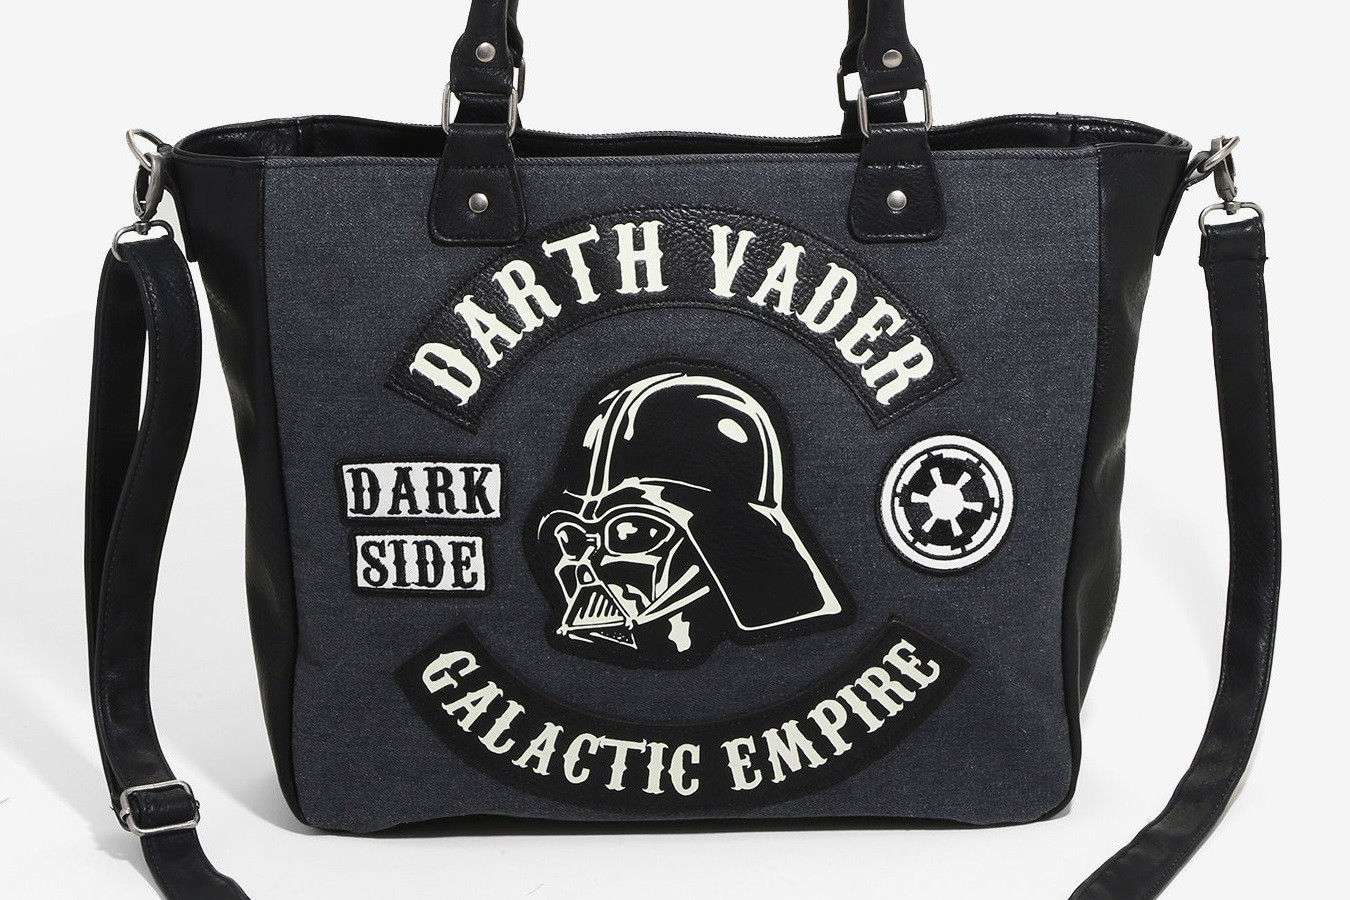 New Loungefly Darth Vader Denim Bag